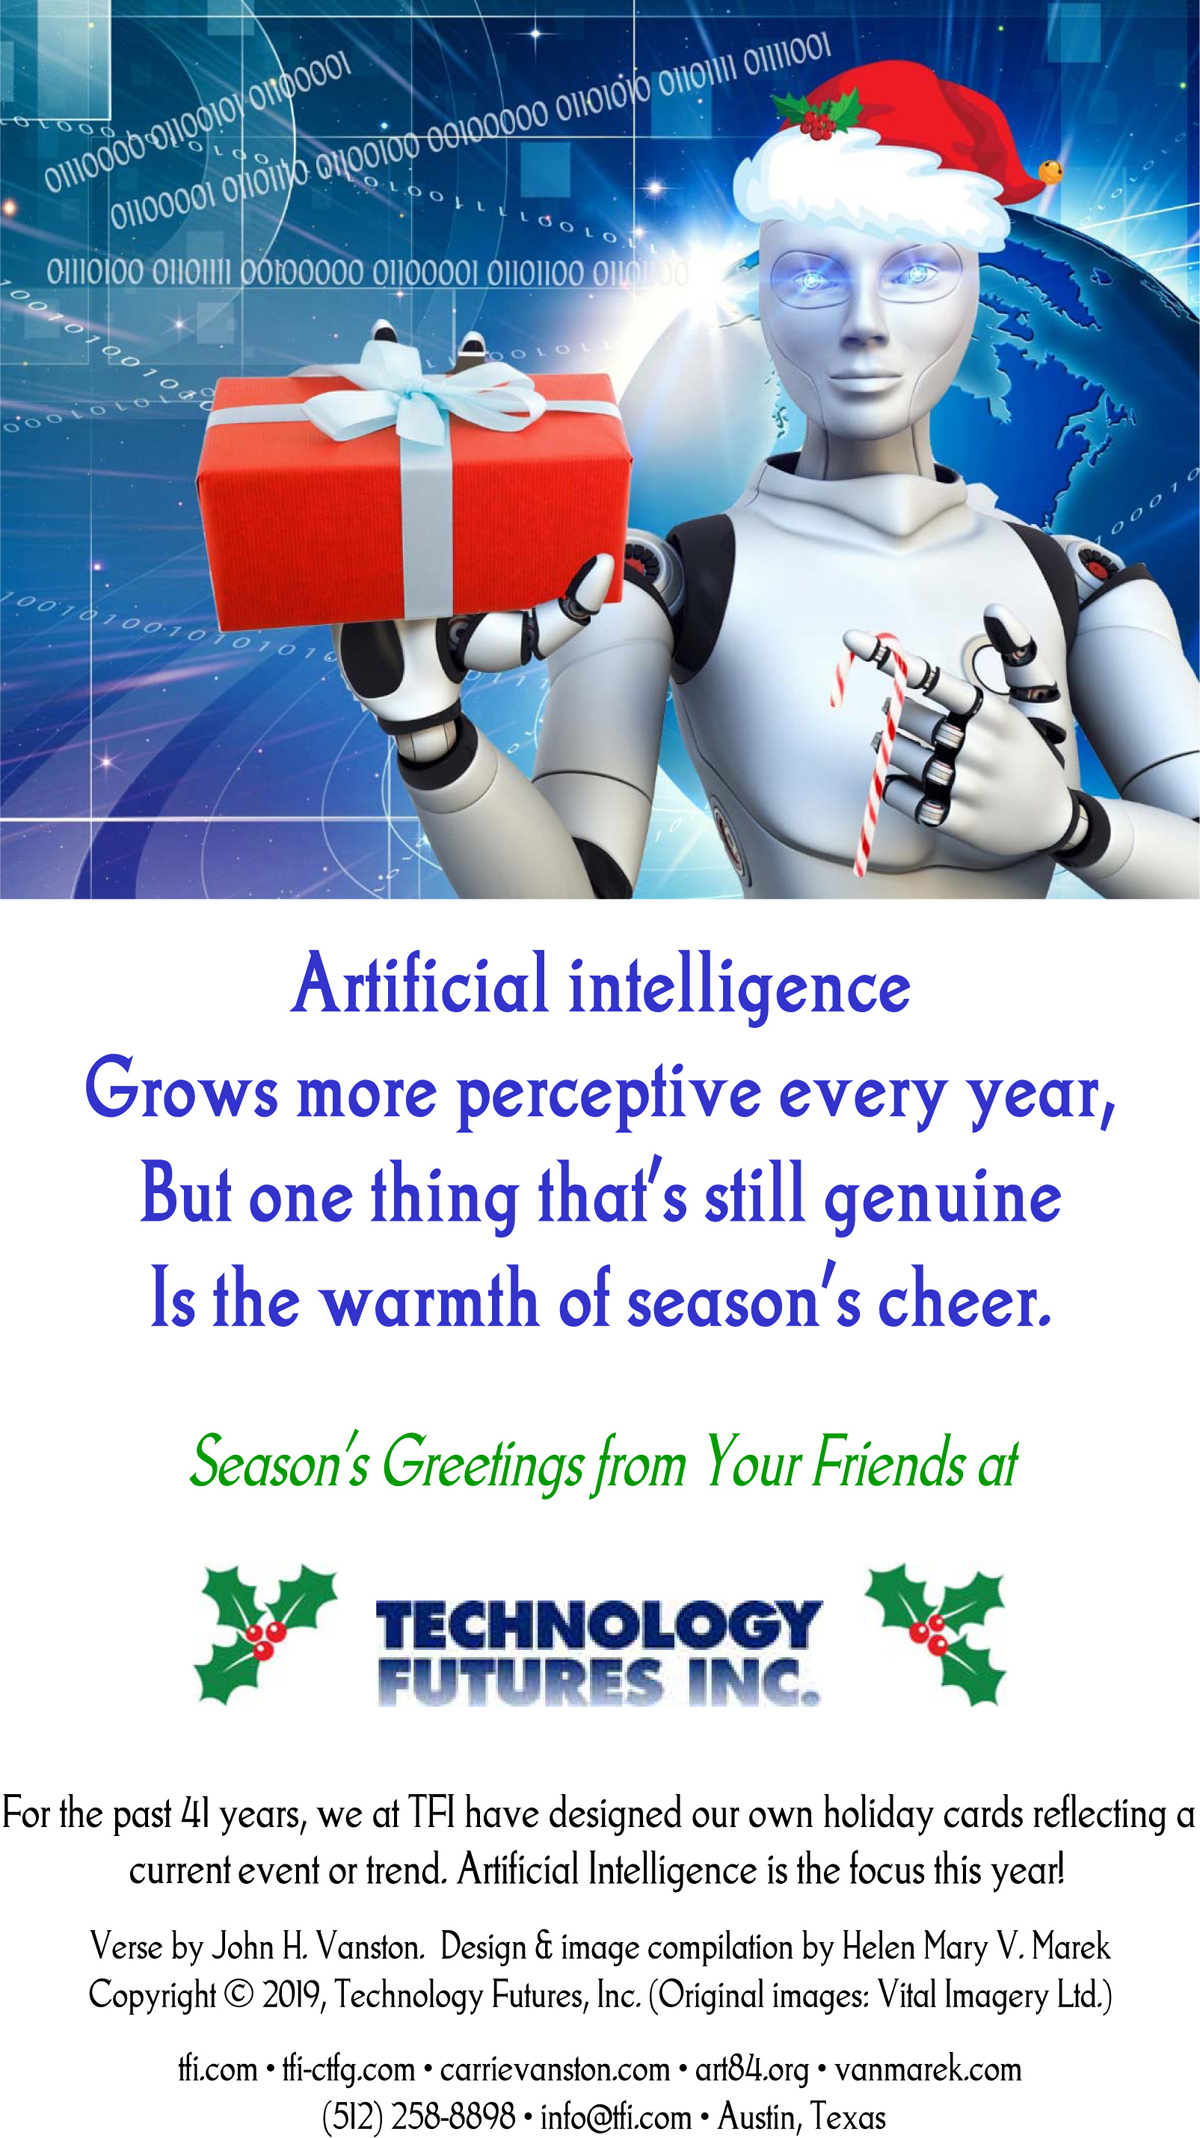 Microsoft Word - 2019 AI Holiday Card.docx